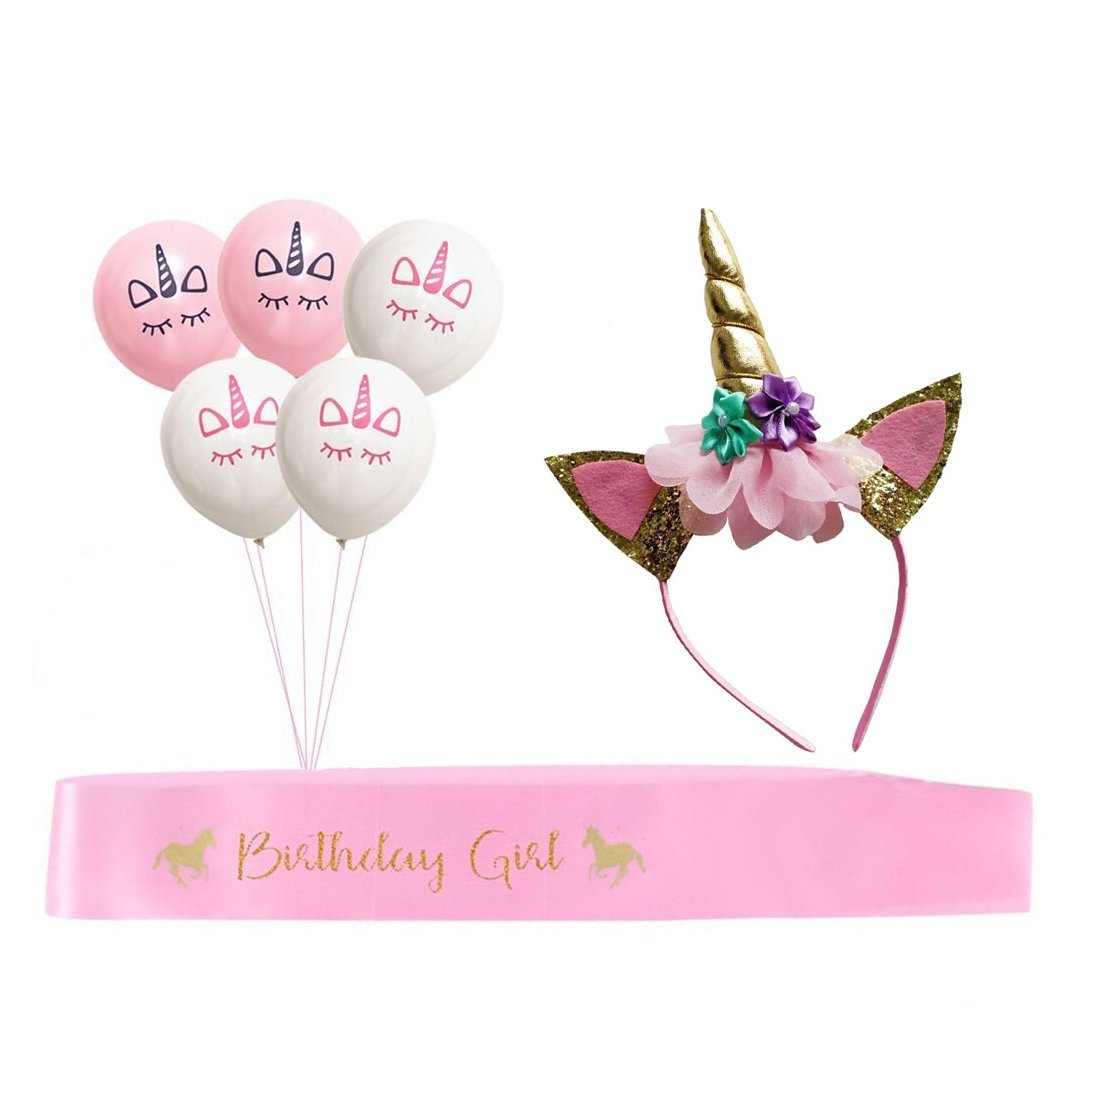 Muhuyi Unicorn Birthday Girl Set Of Gold Glitter Headband And Pink Satin Sash With 20Pcs